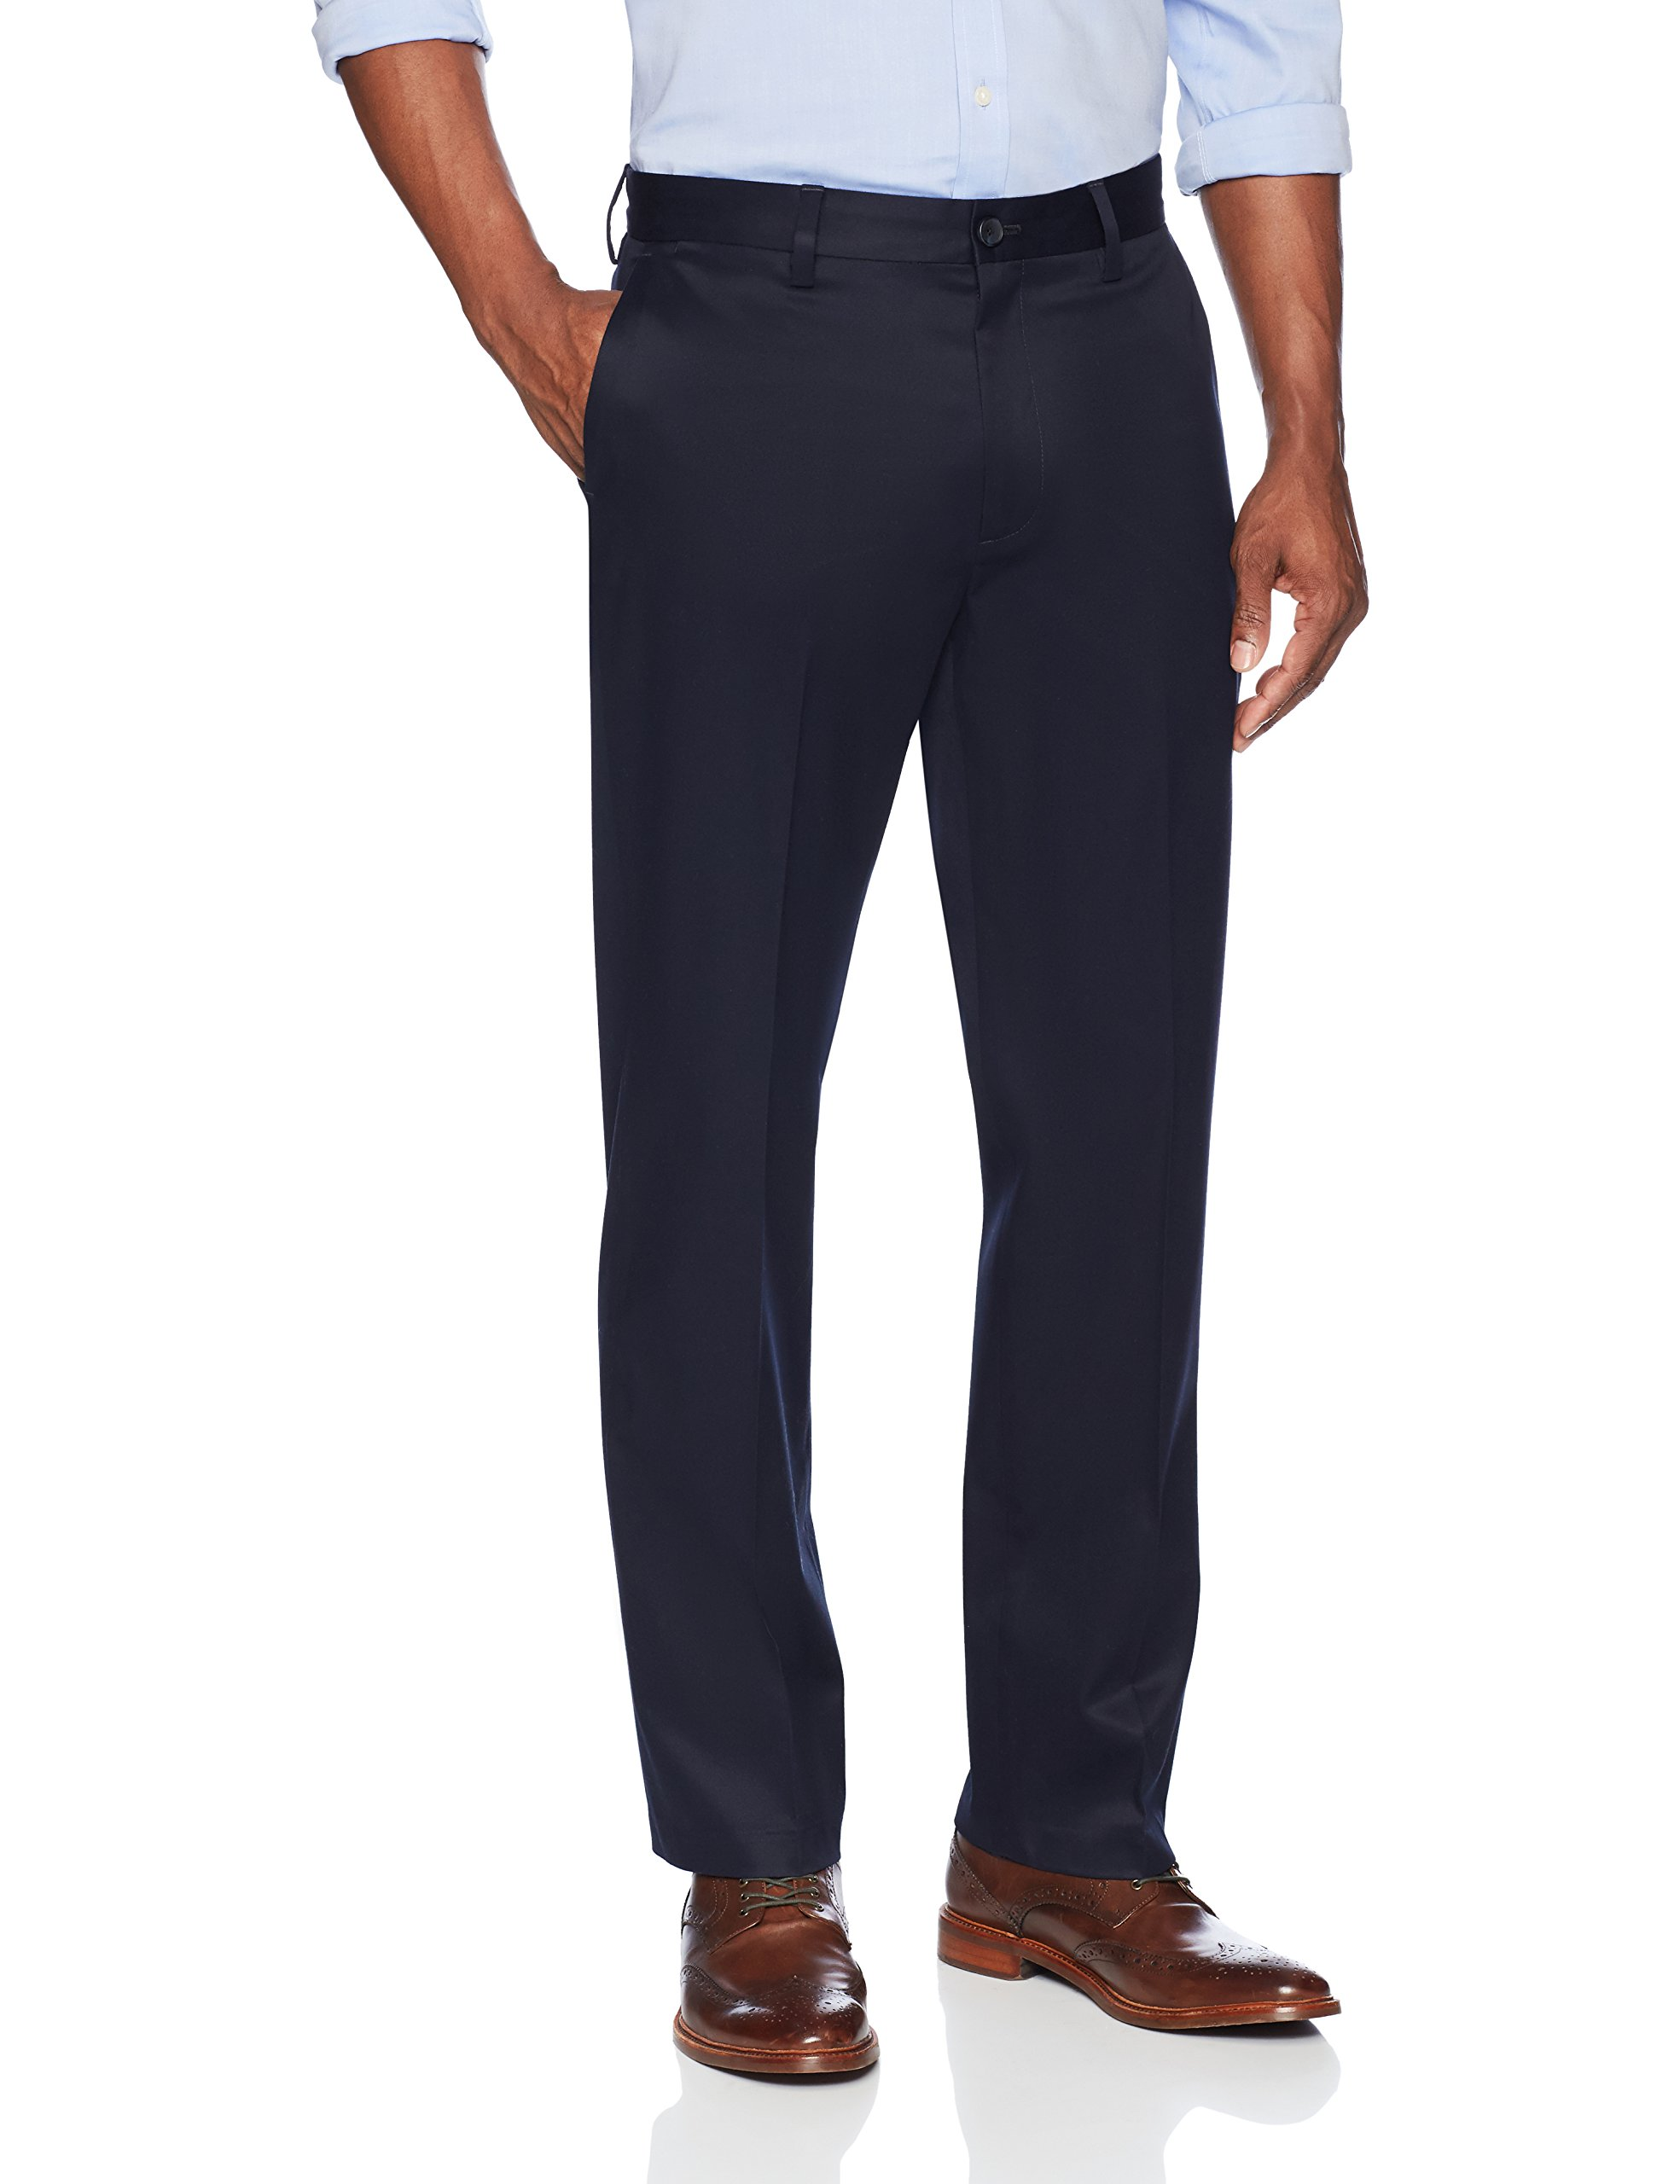 Buttoned Down Men's Relaxed Fit Flat Front Stretch Non-Iron Dress Chino Pant, Navy, 34W x 32L